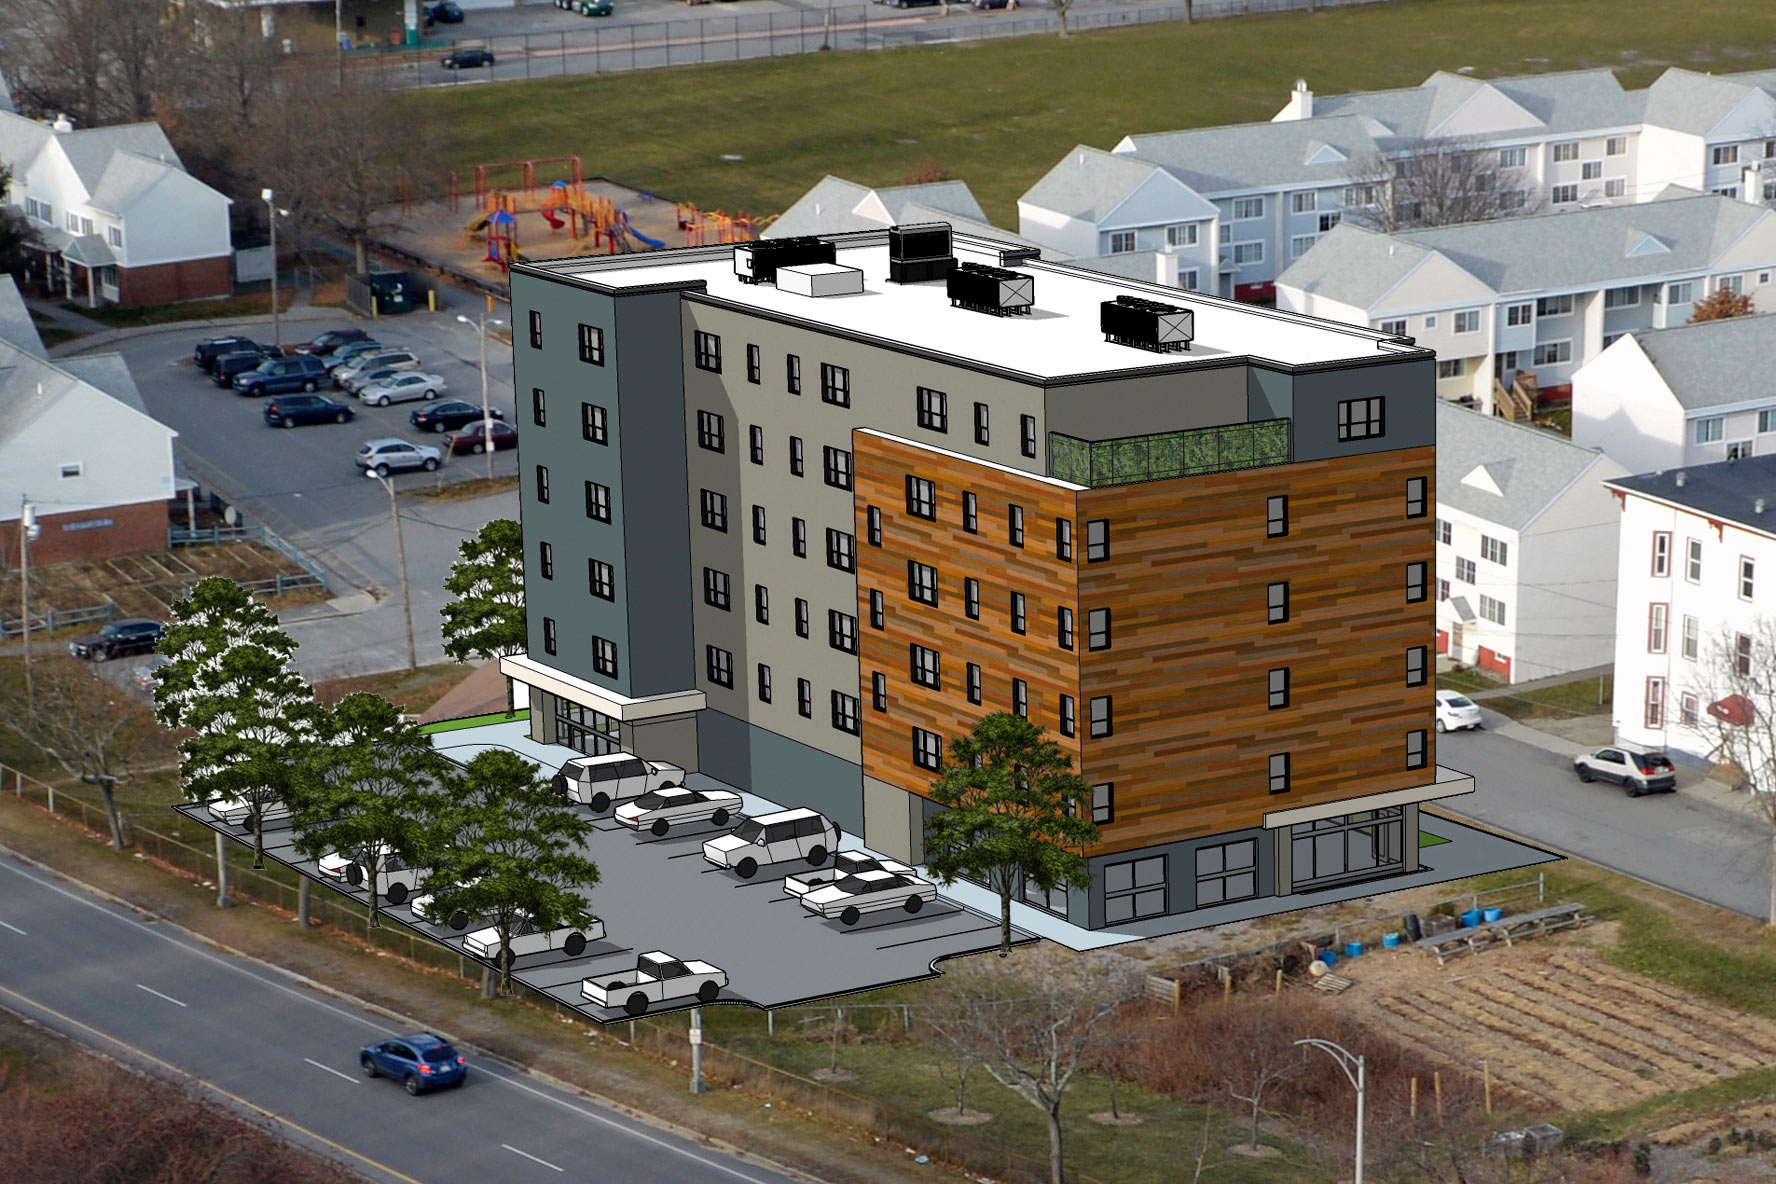 58 Boyd Street - Portland Housing Authority has plans for 55 new apartments in East Bayside.